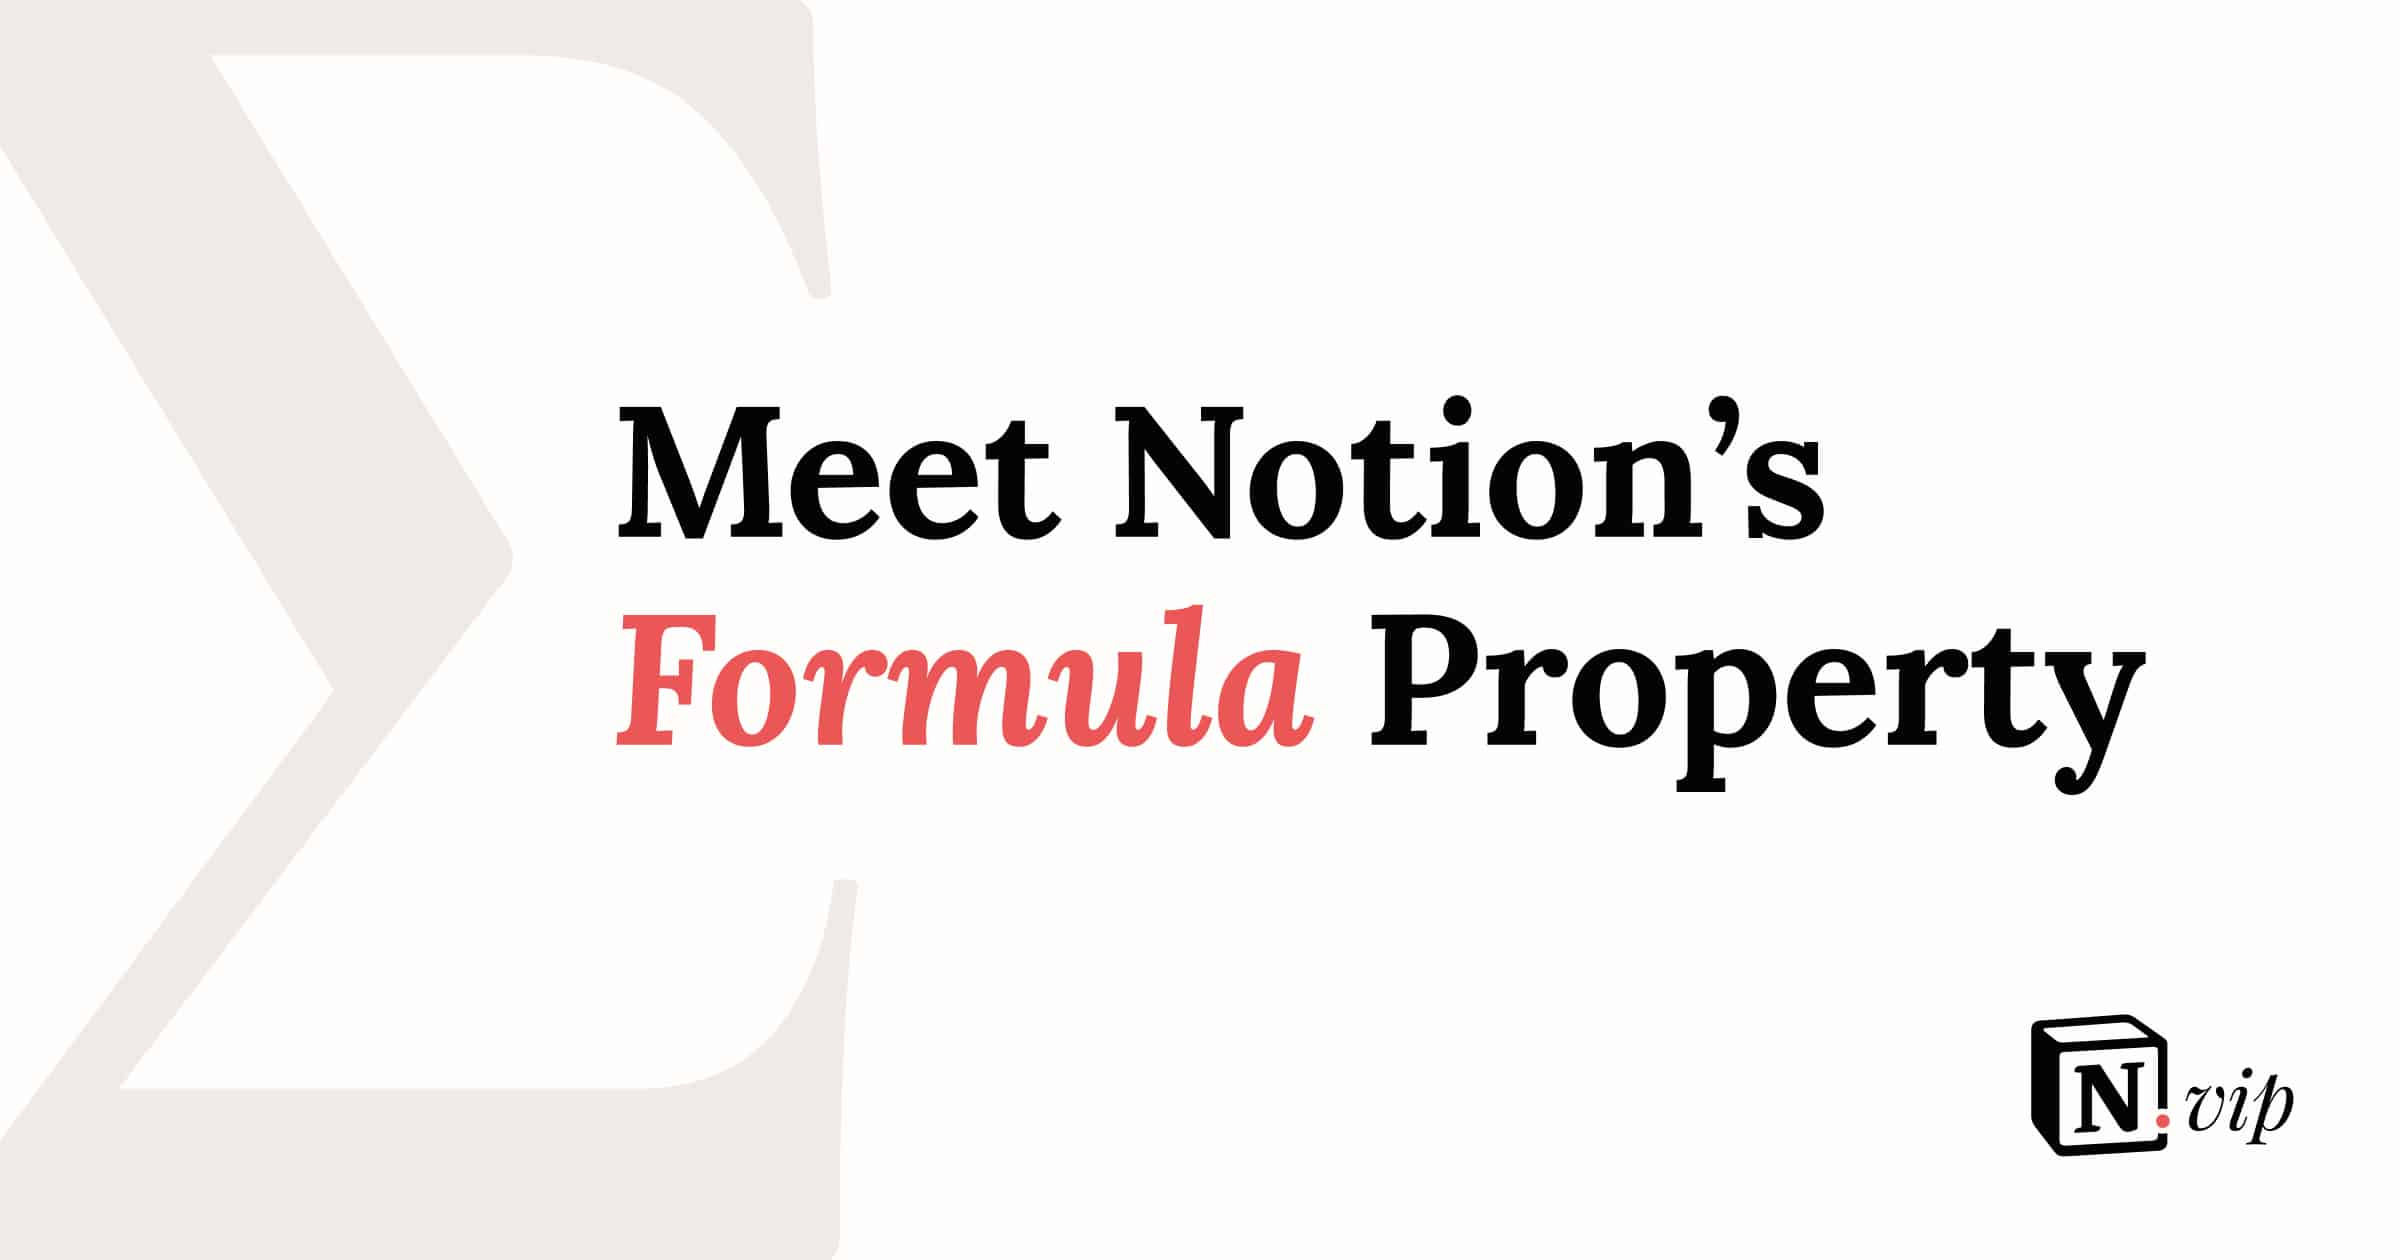 Meet Notion's Formula Property